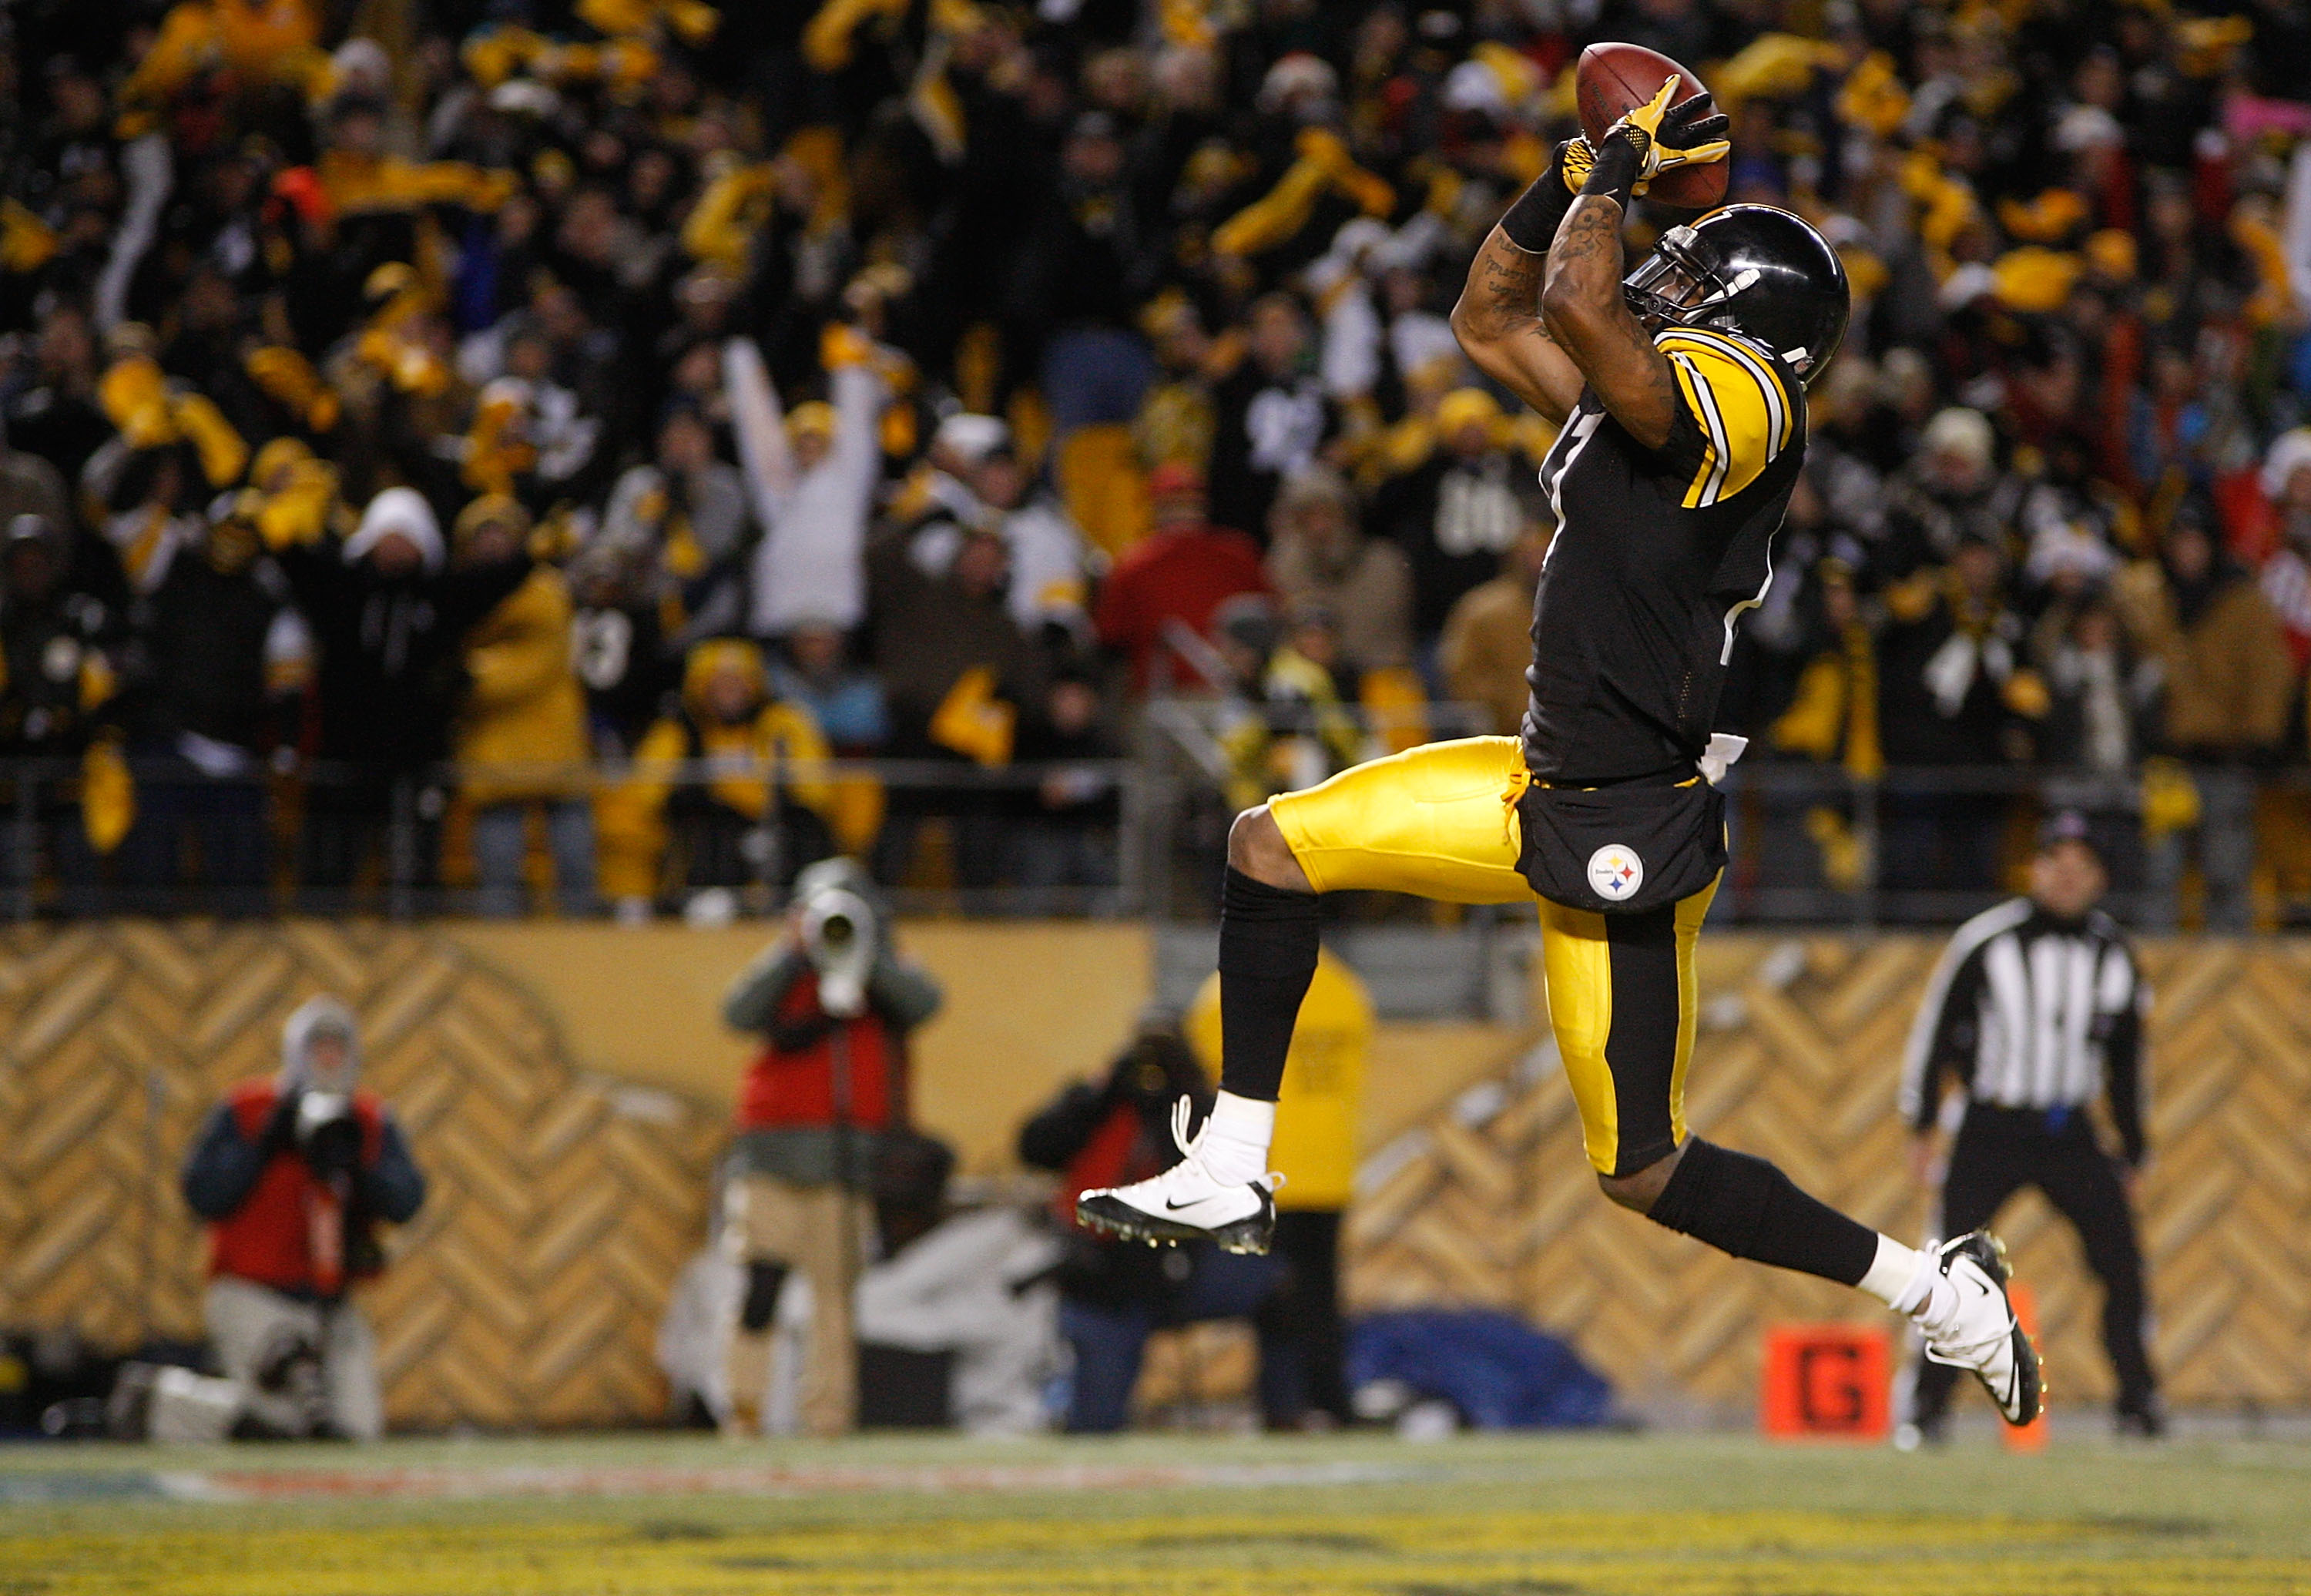 PITTSBURGH - DECEMBER 23:  Mike Wallace #17 of the Pittsburgh Steelers celebrates after scoring a touchdown against the Carolina Panthers during the game on December 23, 2010 at Heinz Field in Pittsburgh, Pennsylvania.  (Photo by Jared Wickerham/Getty Ima